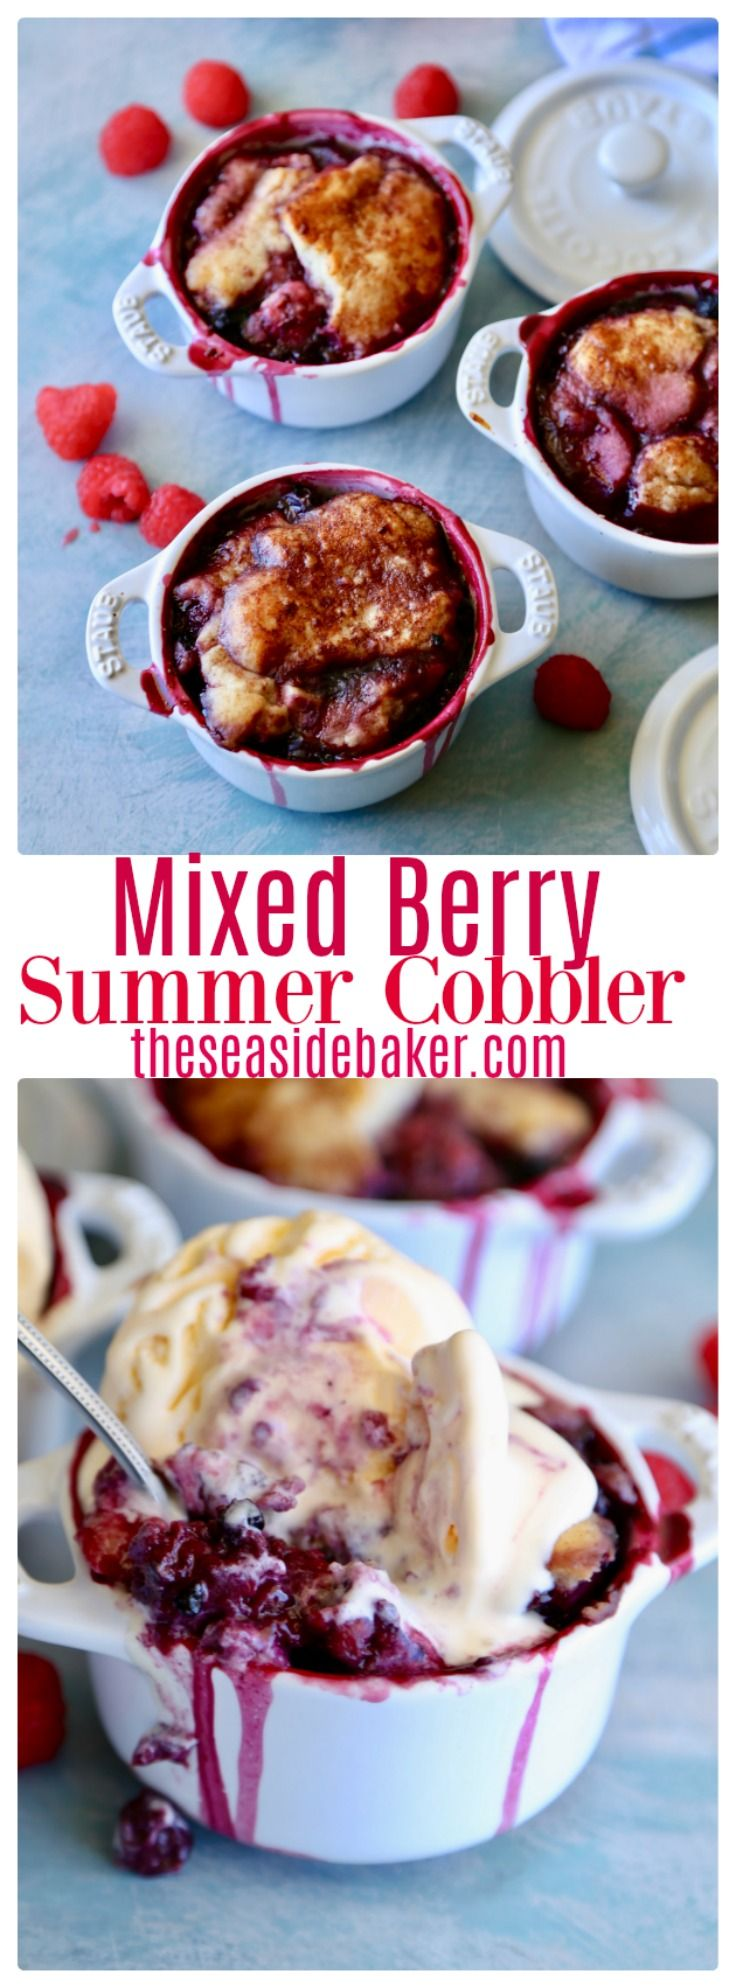 Blueberry, blackberry, and raspberry summer cobbler topped with buttery delicious cakey topping sprinkled with cinnamon and sugar